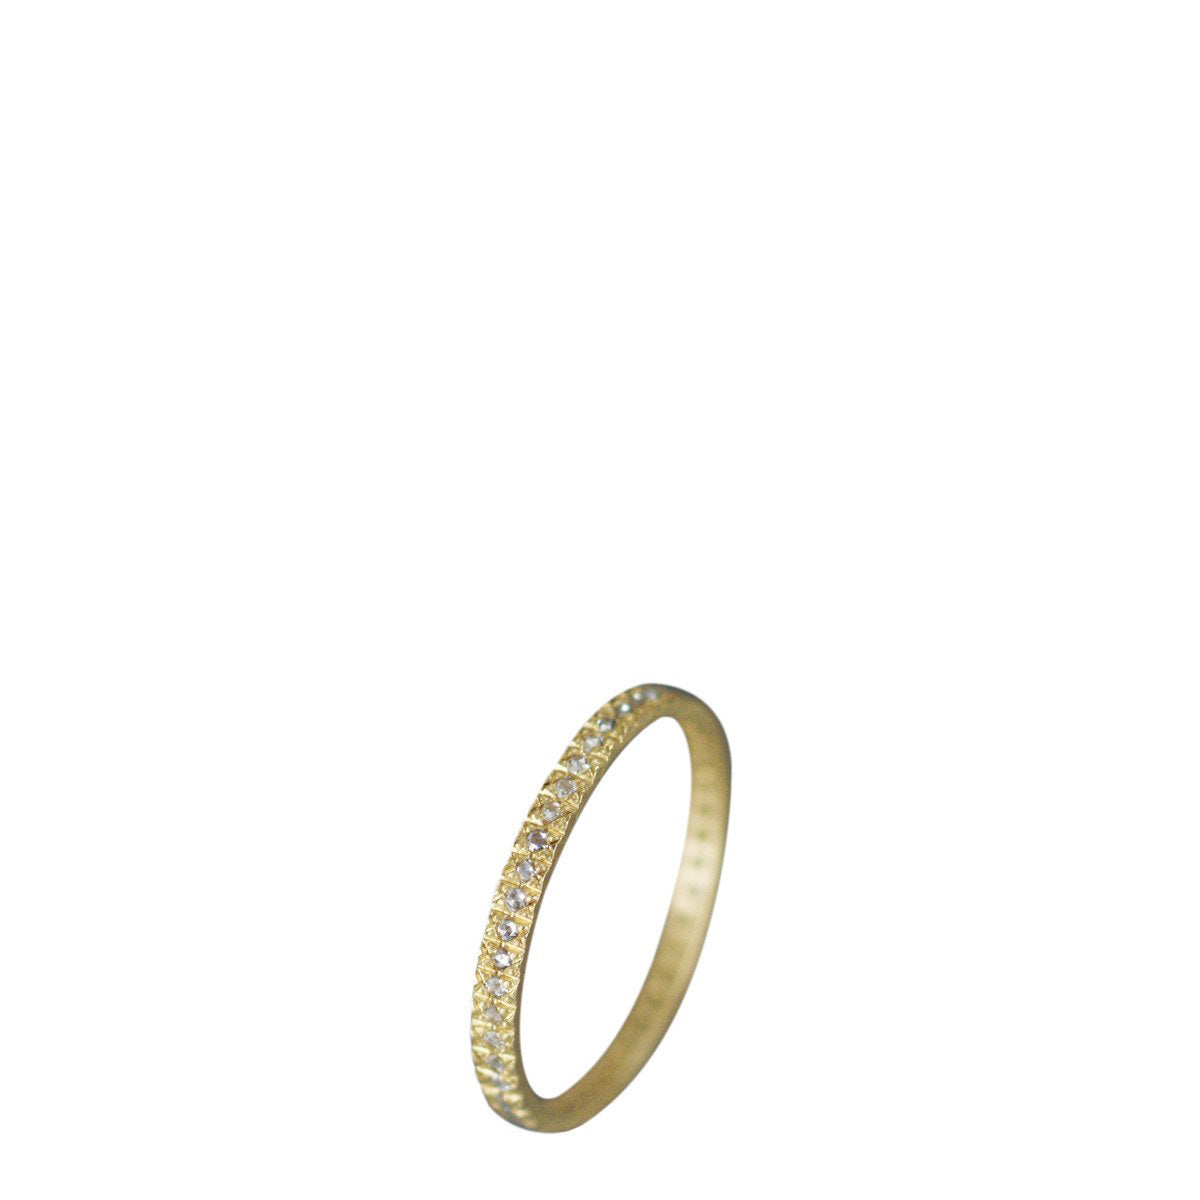 18K Gold 2mm Band with 1mm Indian Diamonds